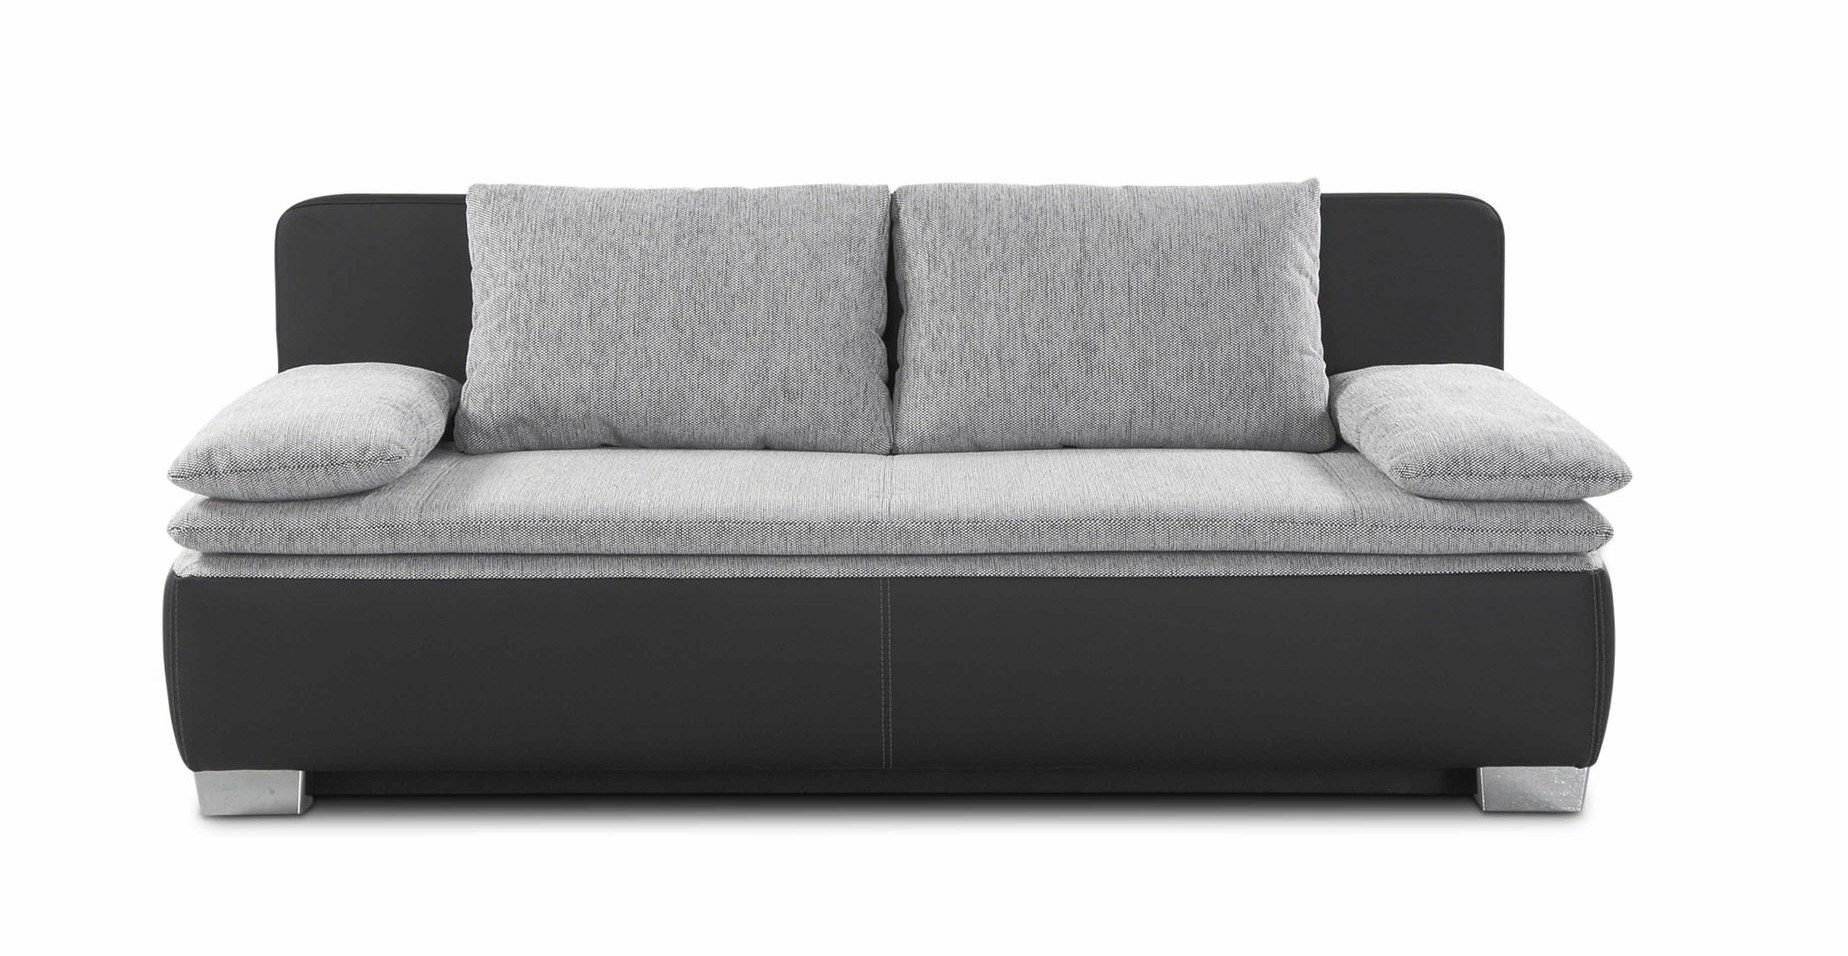 polsterland nagold schlafsofa mit bettkasten. Black Bedroom Furniture Sets. Home Design Ideas